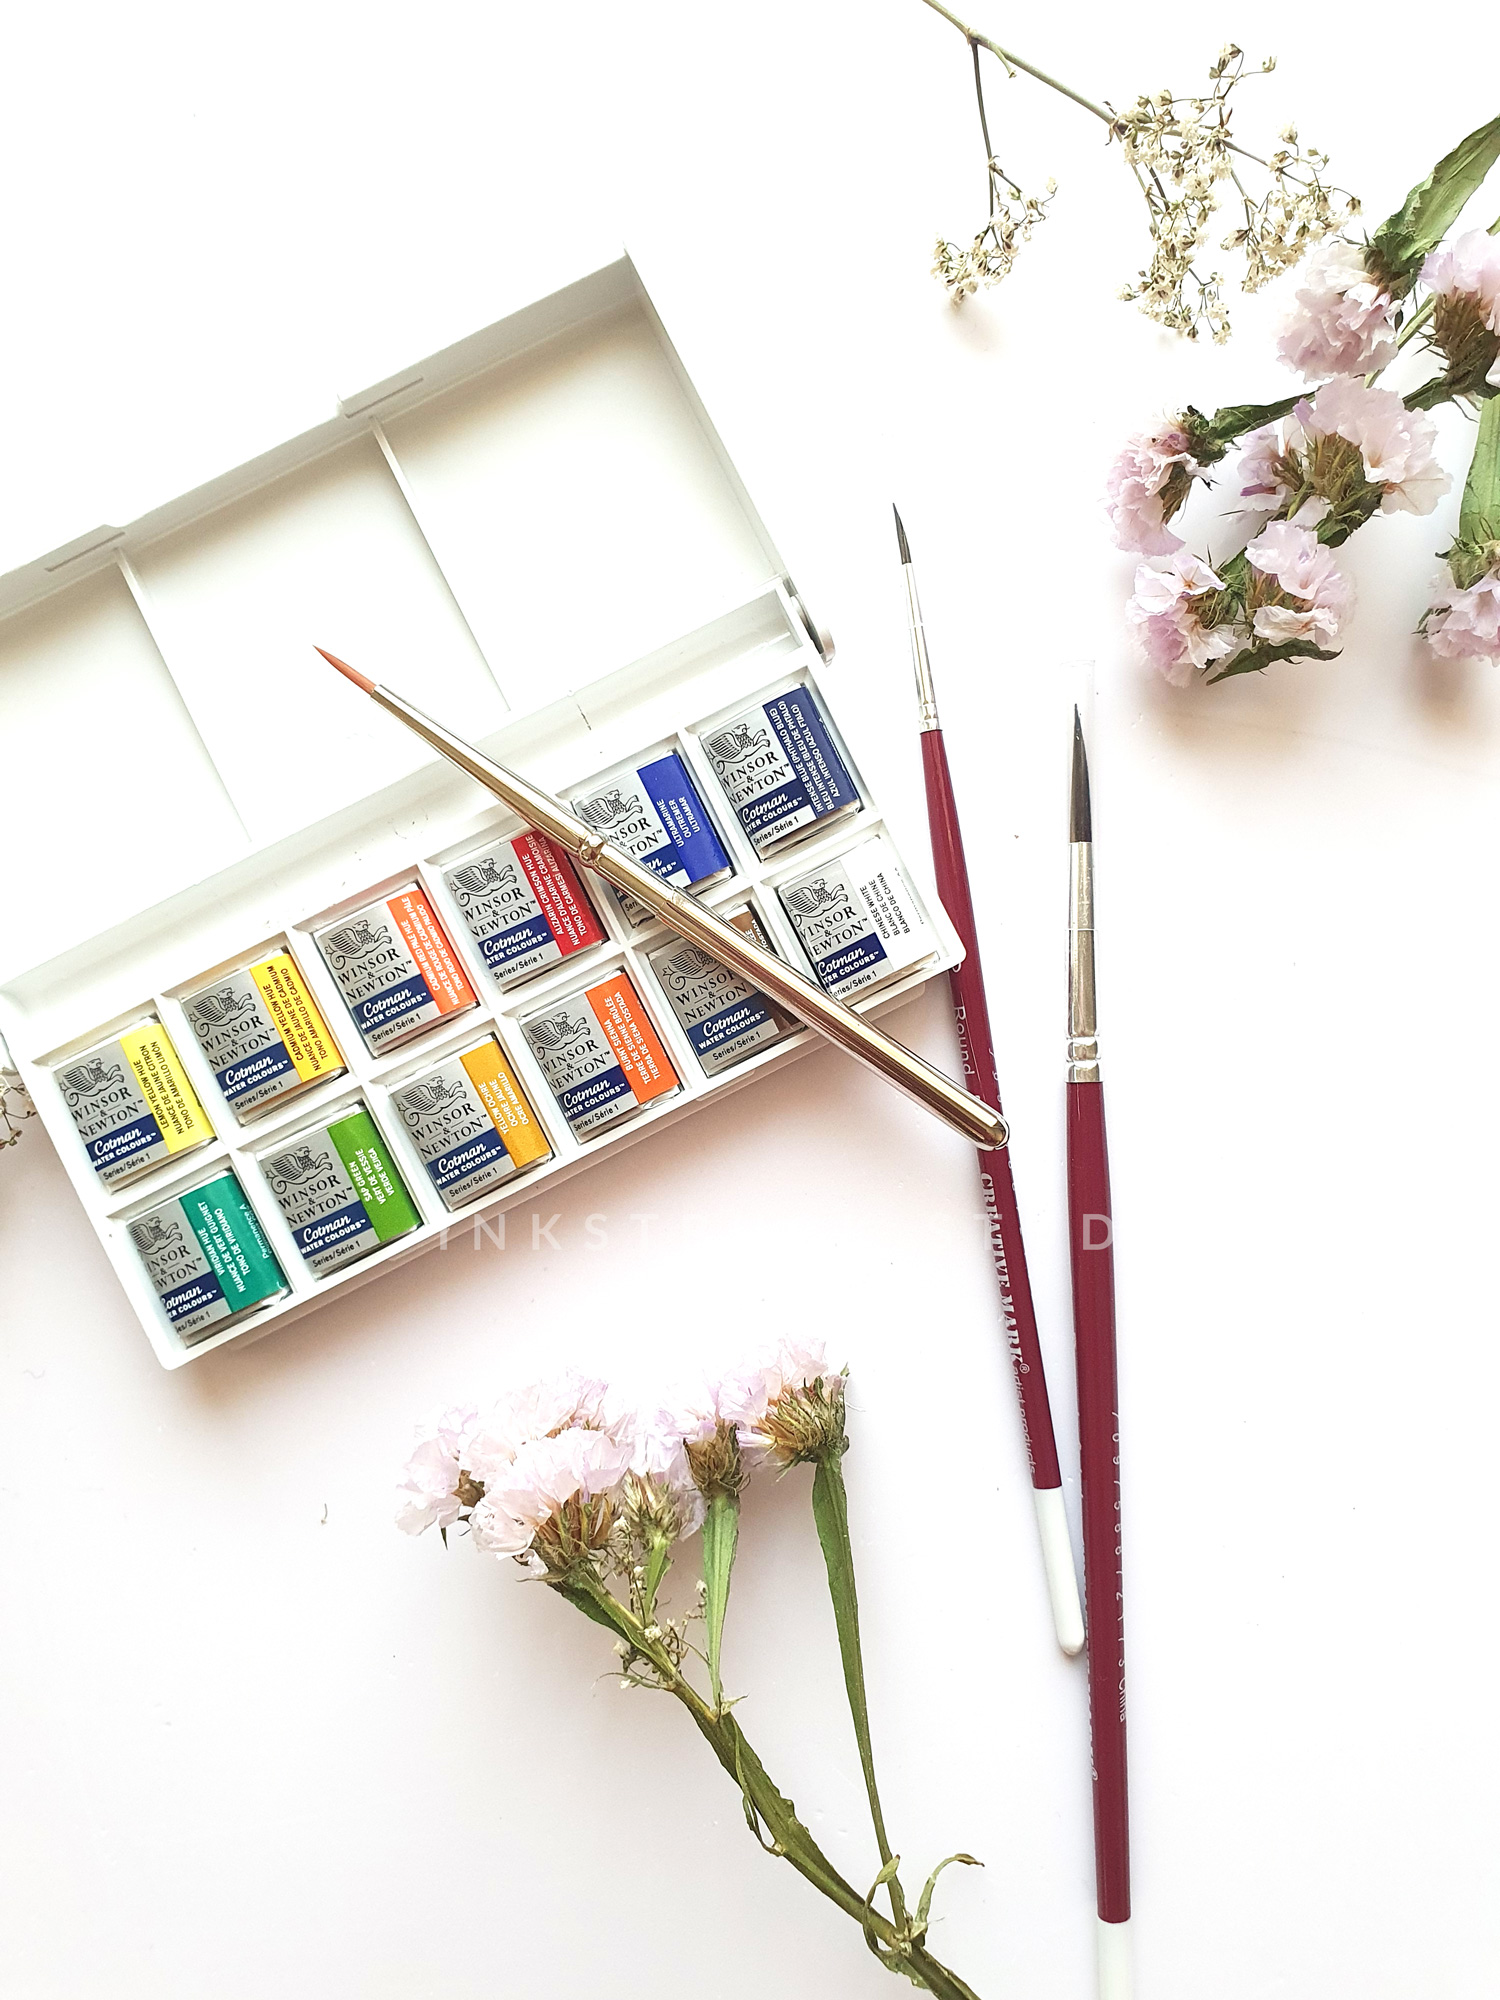 """Beginner watercolor supplies to kickstart your watercolor journey. It is a comprehensive kit that includes the materials required for an absolute beginner in watercolors. Free delivery available within Doha city limits. Delivery will be extra if the location is outside city limits. Pick up option available as well. International shipping is not available during this time.       Kit includes - Winsor and Newton Cotman half pan pocket-sized set of 12 includes a travel brush as well Langton Prestige 12""""x0"""" 100% cotton watercolor paper pad Palette (not pictured but is included) Creative hands watercolor brush round size 6 and detail size 3/0 """"Watercolor butterflies made easy """" e-book Watercolor florals workshop only copy e-book Express Paypal option available on this page. Upon checkout, you will have the options of Card payment, Bank transfer, and Paypal as well. Please choose your preferred payment and delivery option."""